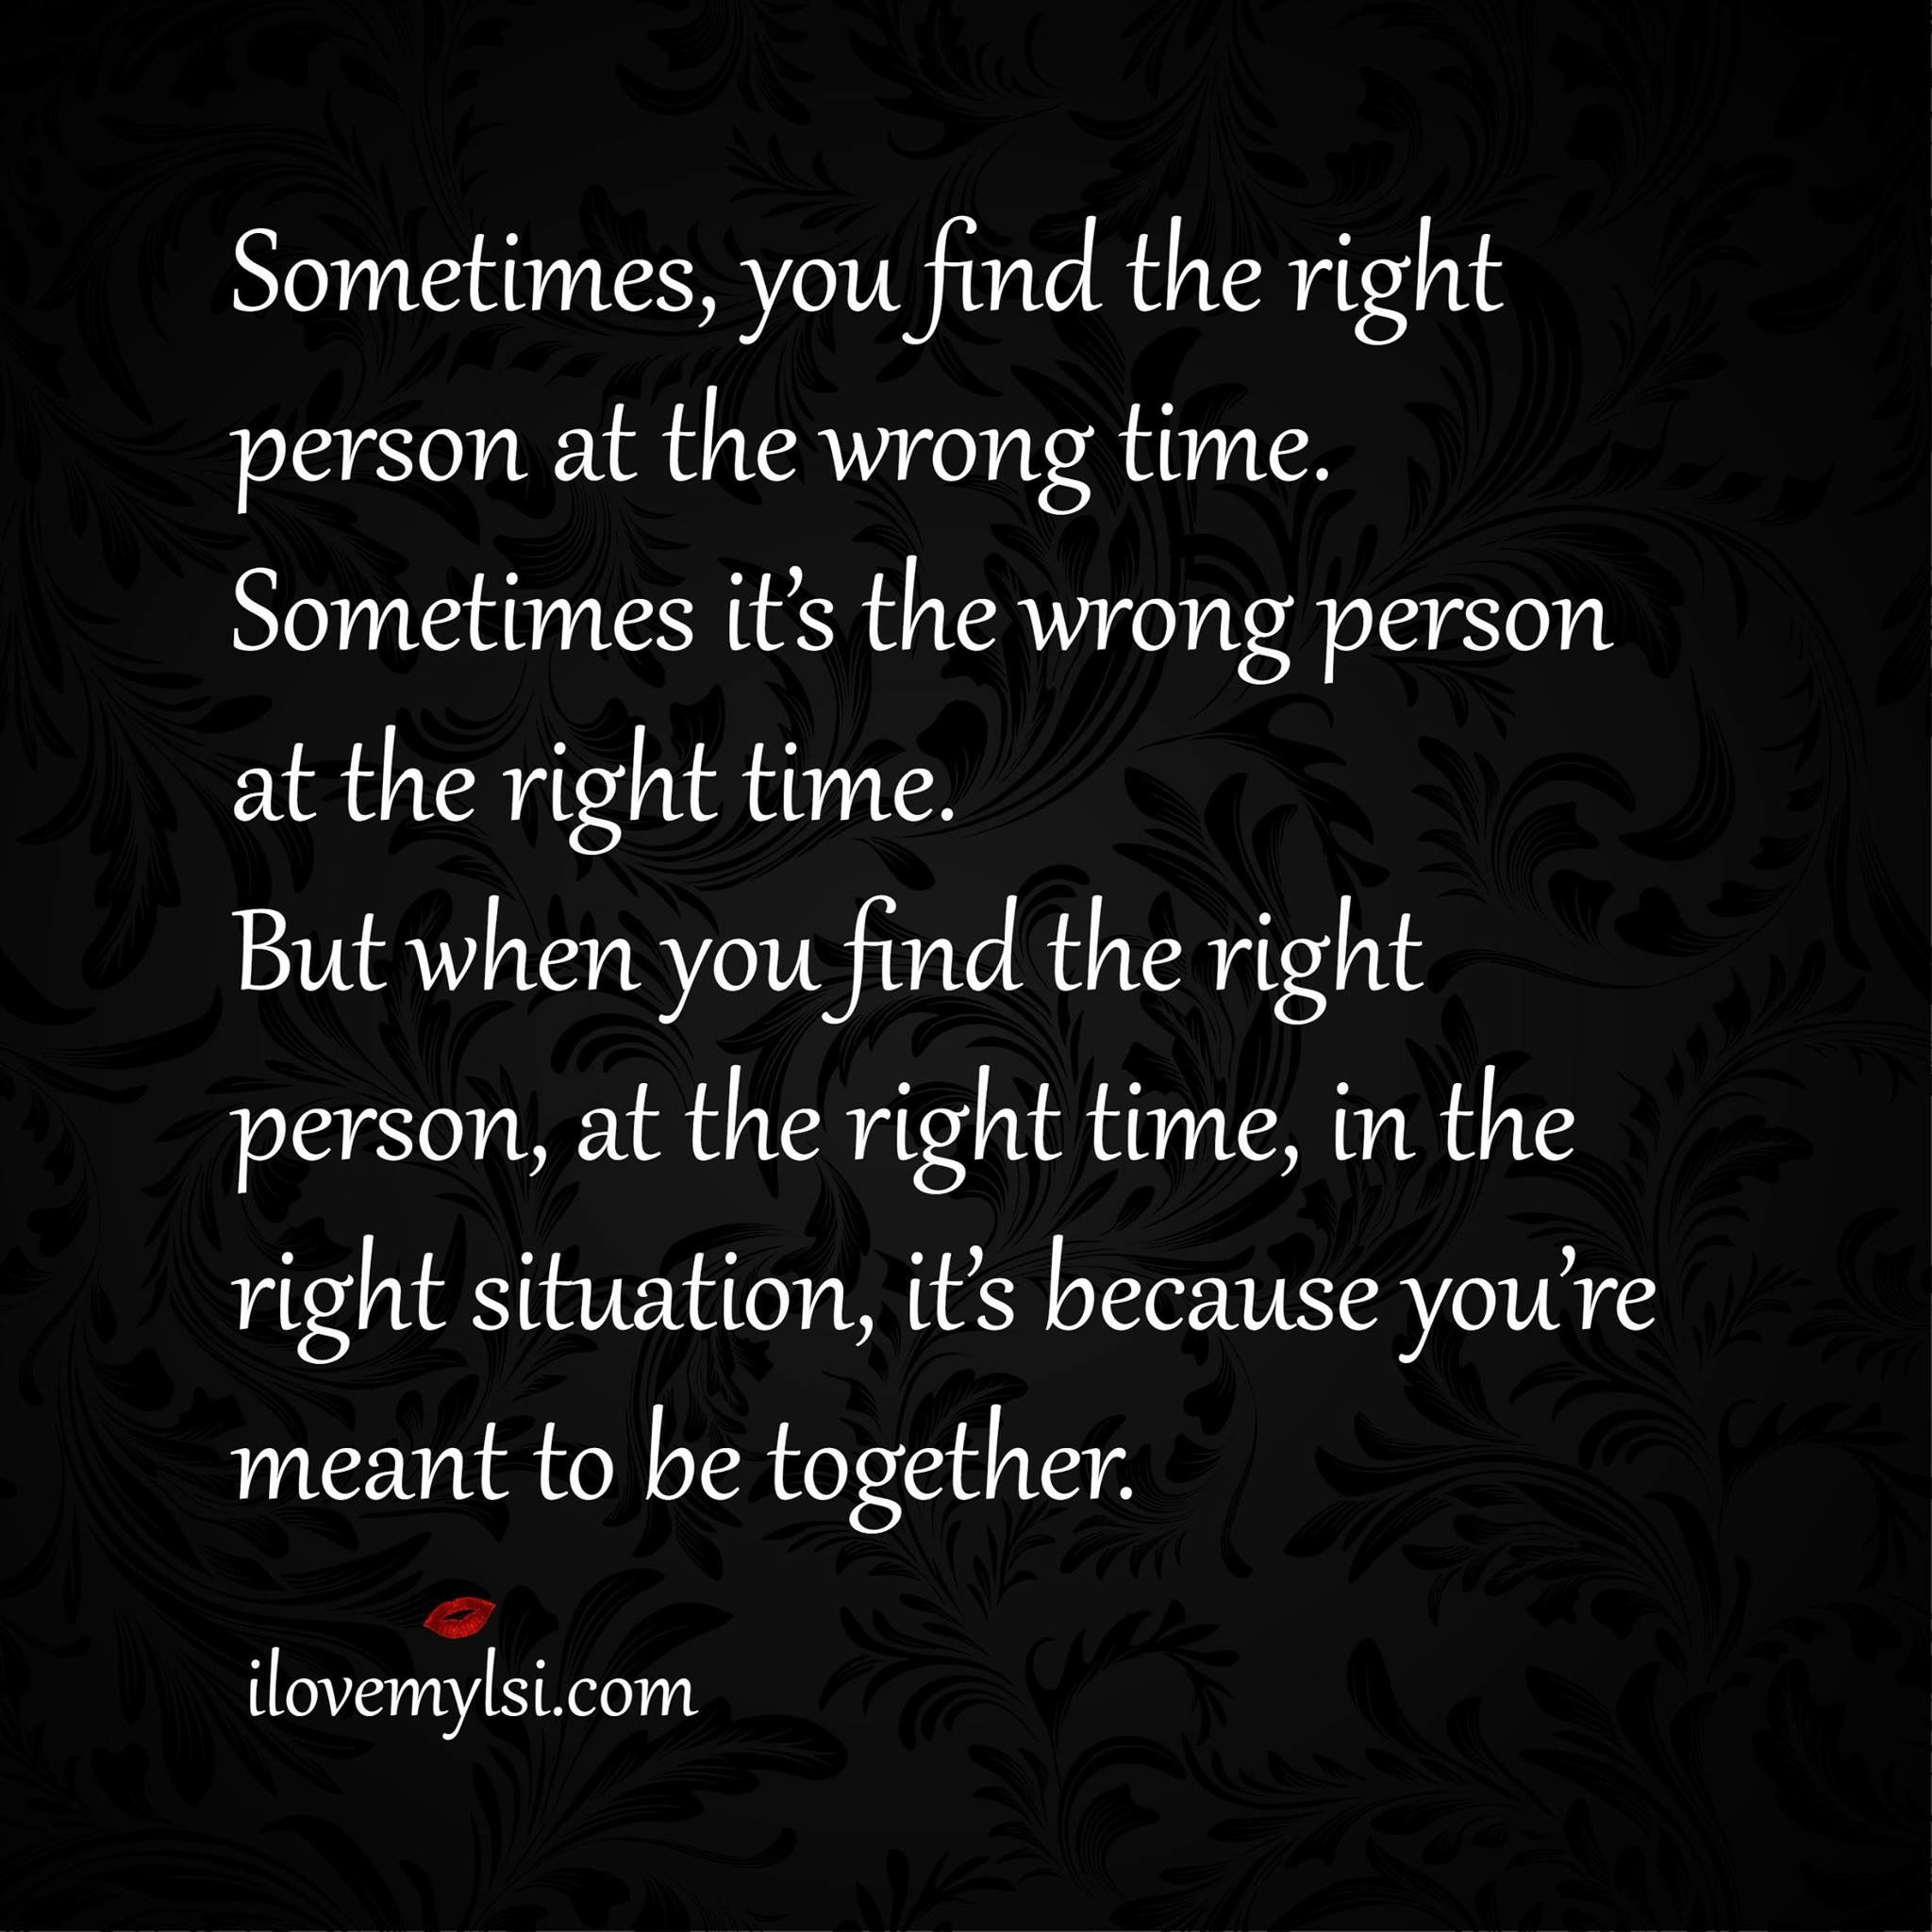 Pin by Jennifer Curry on Beautifully said ️ | Finding love